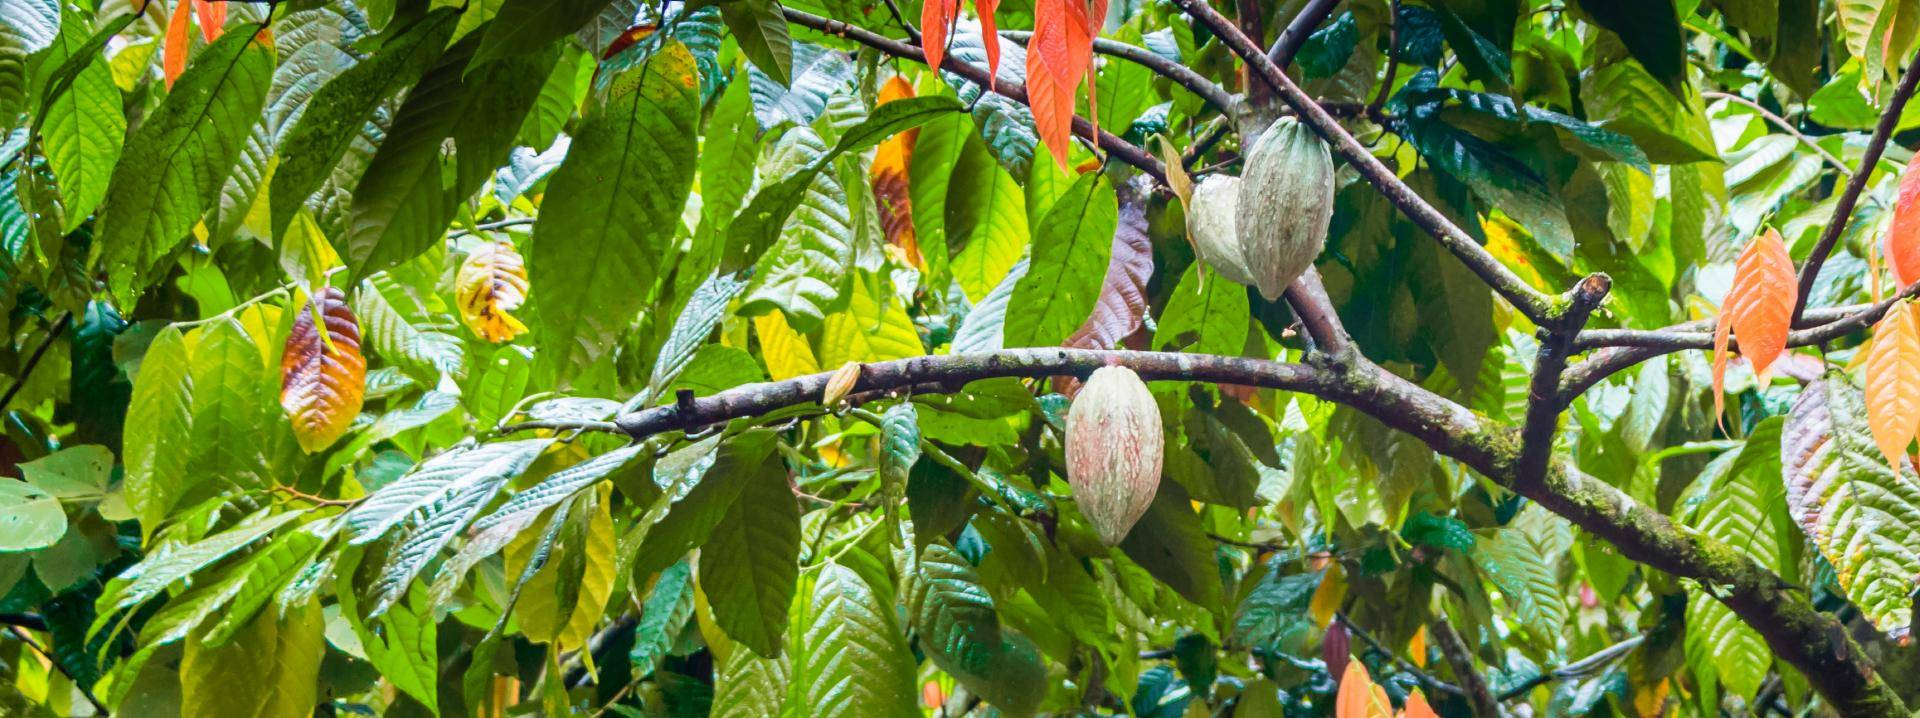 cacaofruit hanging in tree